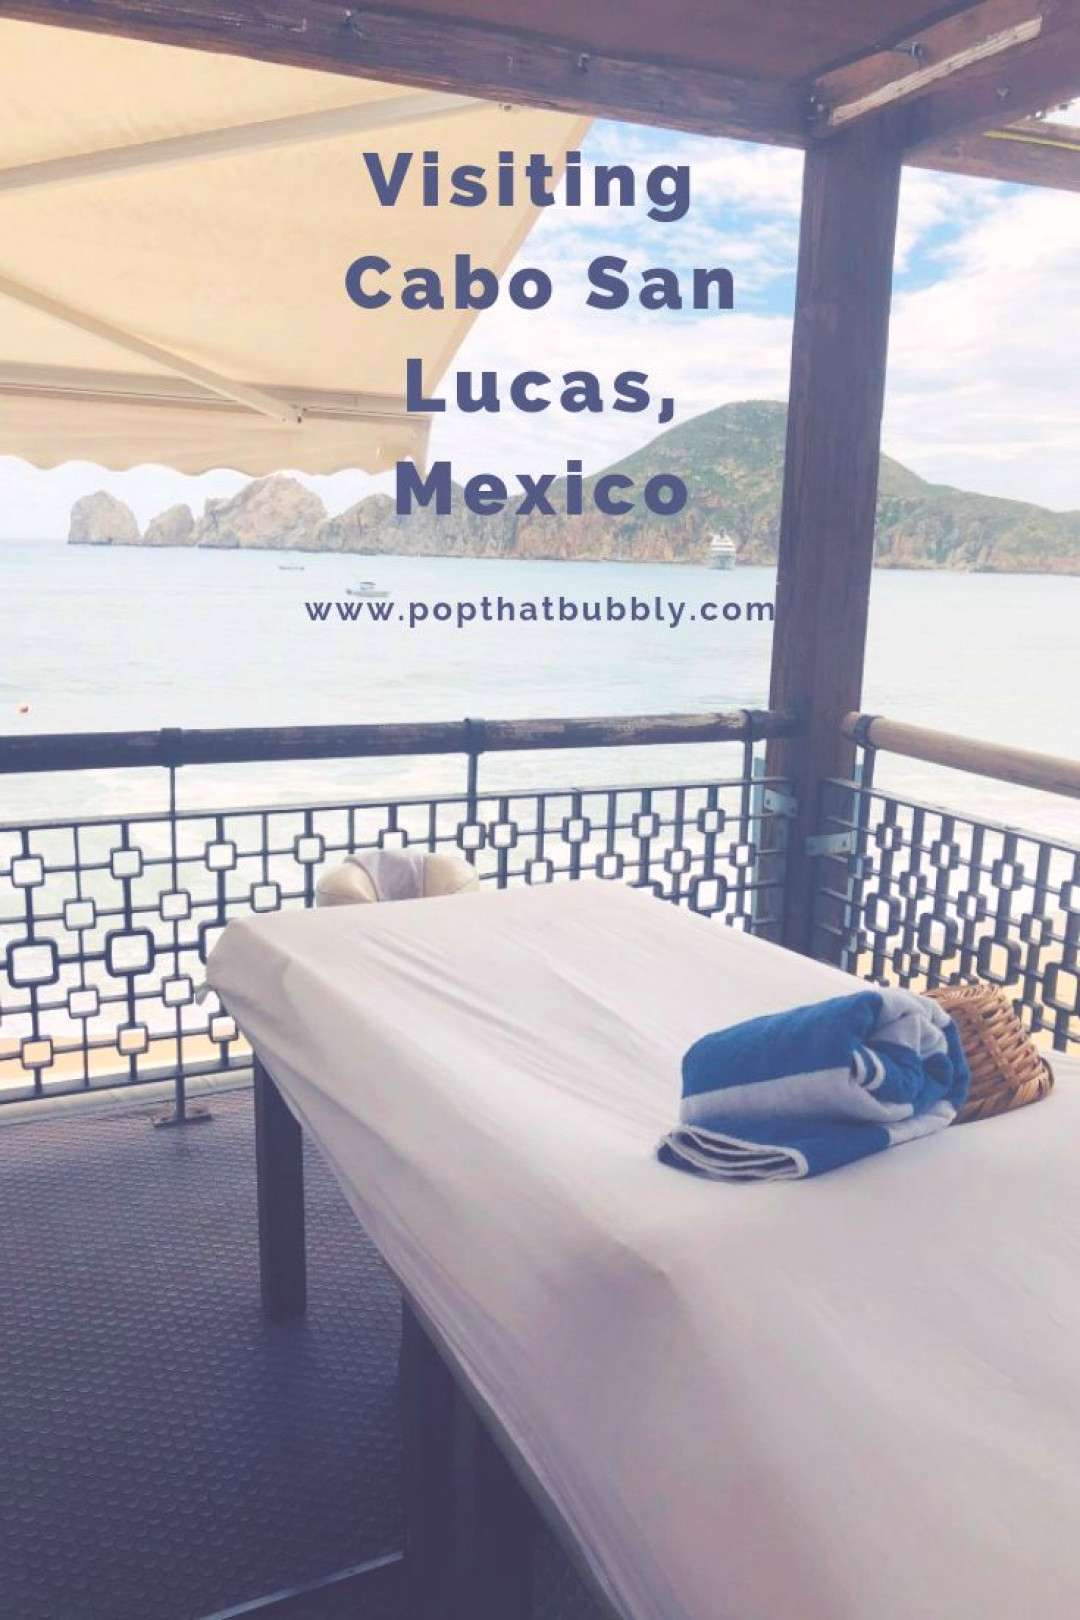 Cabo San Lucas, Mexico! Visiting Cabo! Click the link to learn more!